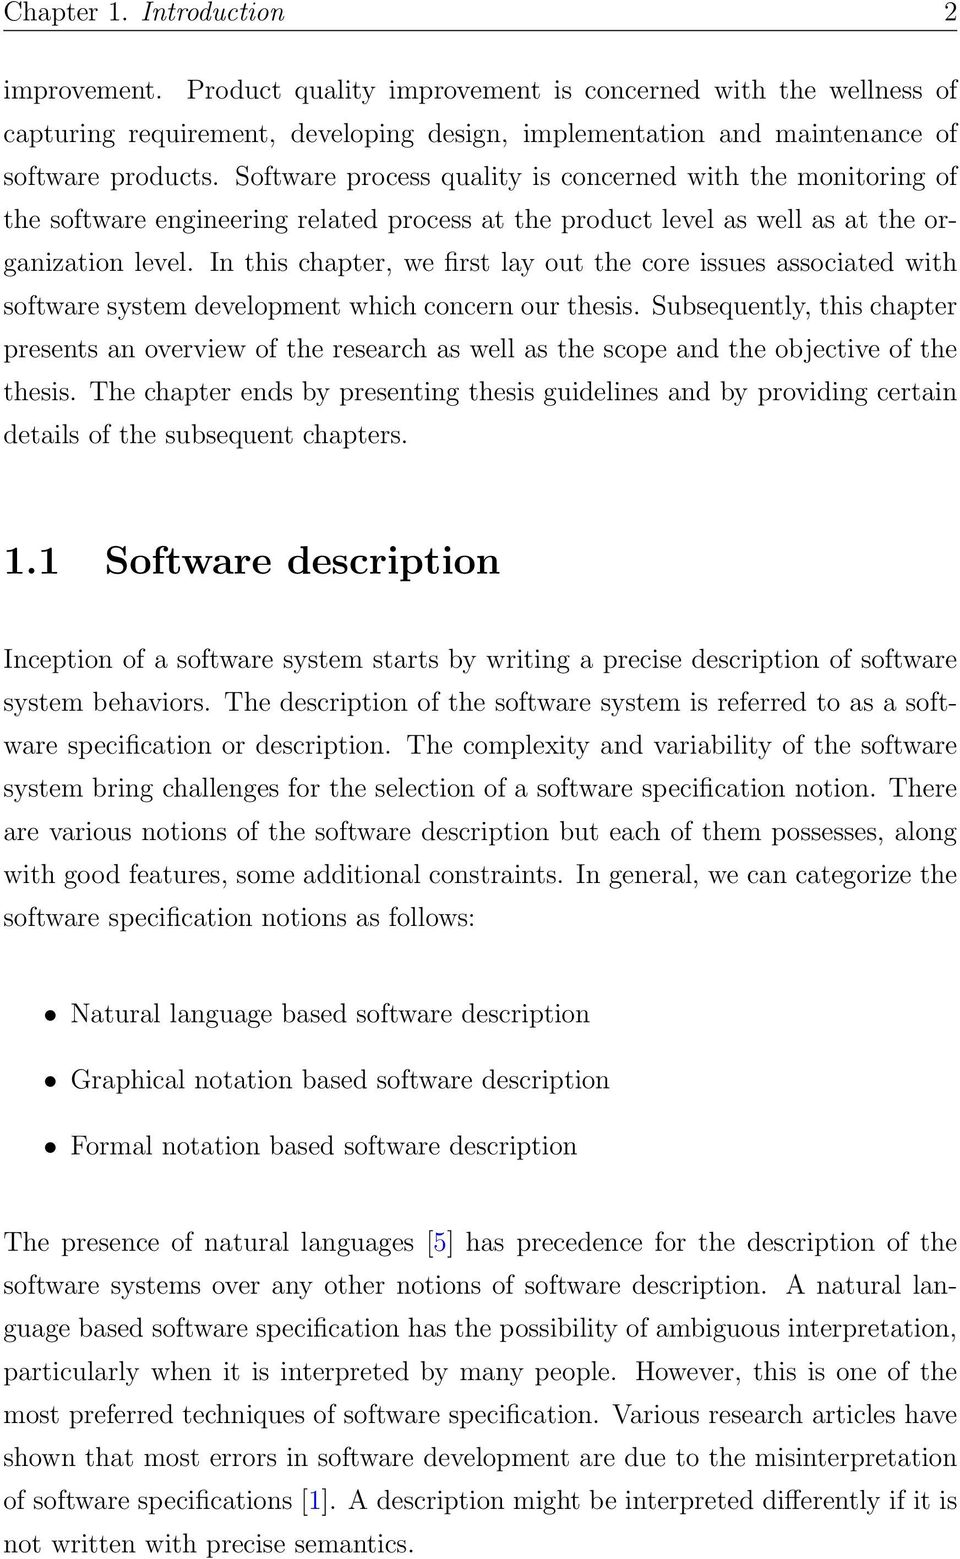 In this chapter, we first lay out the core issues associated with software system development which concern our thesis.